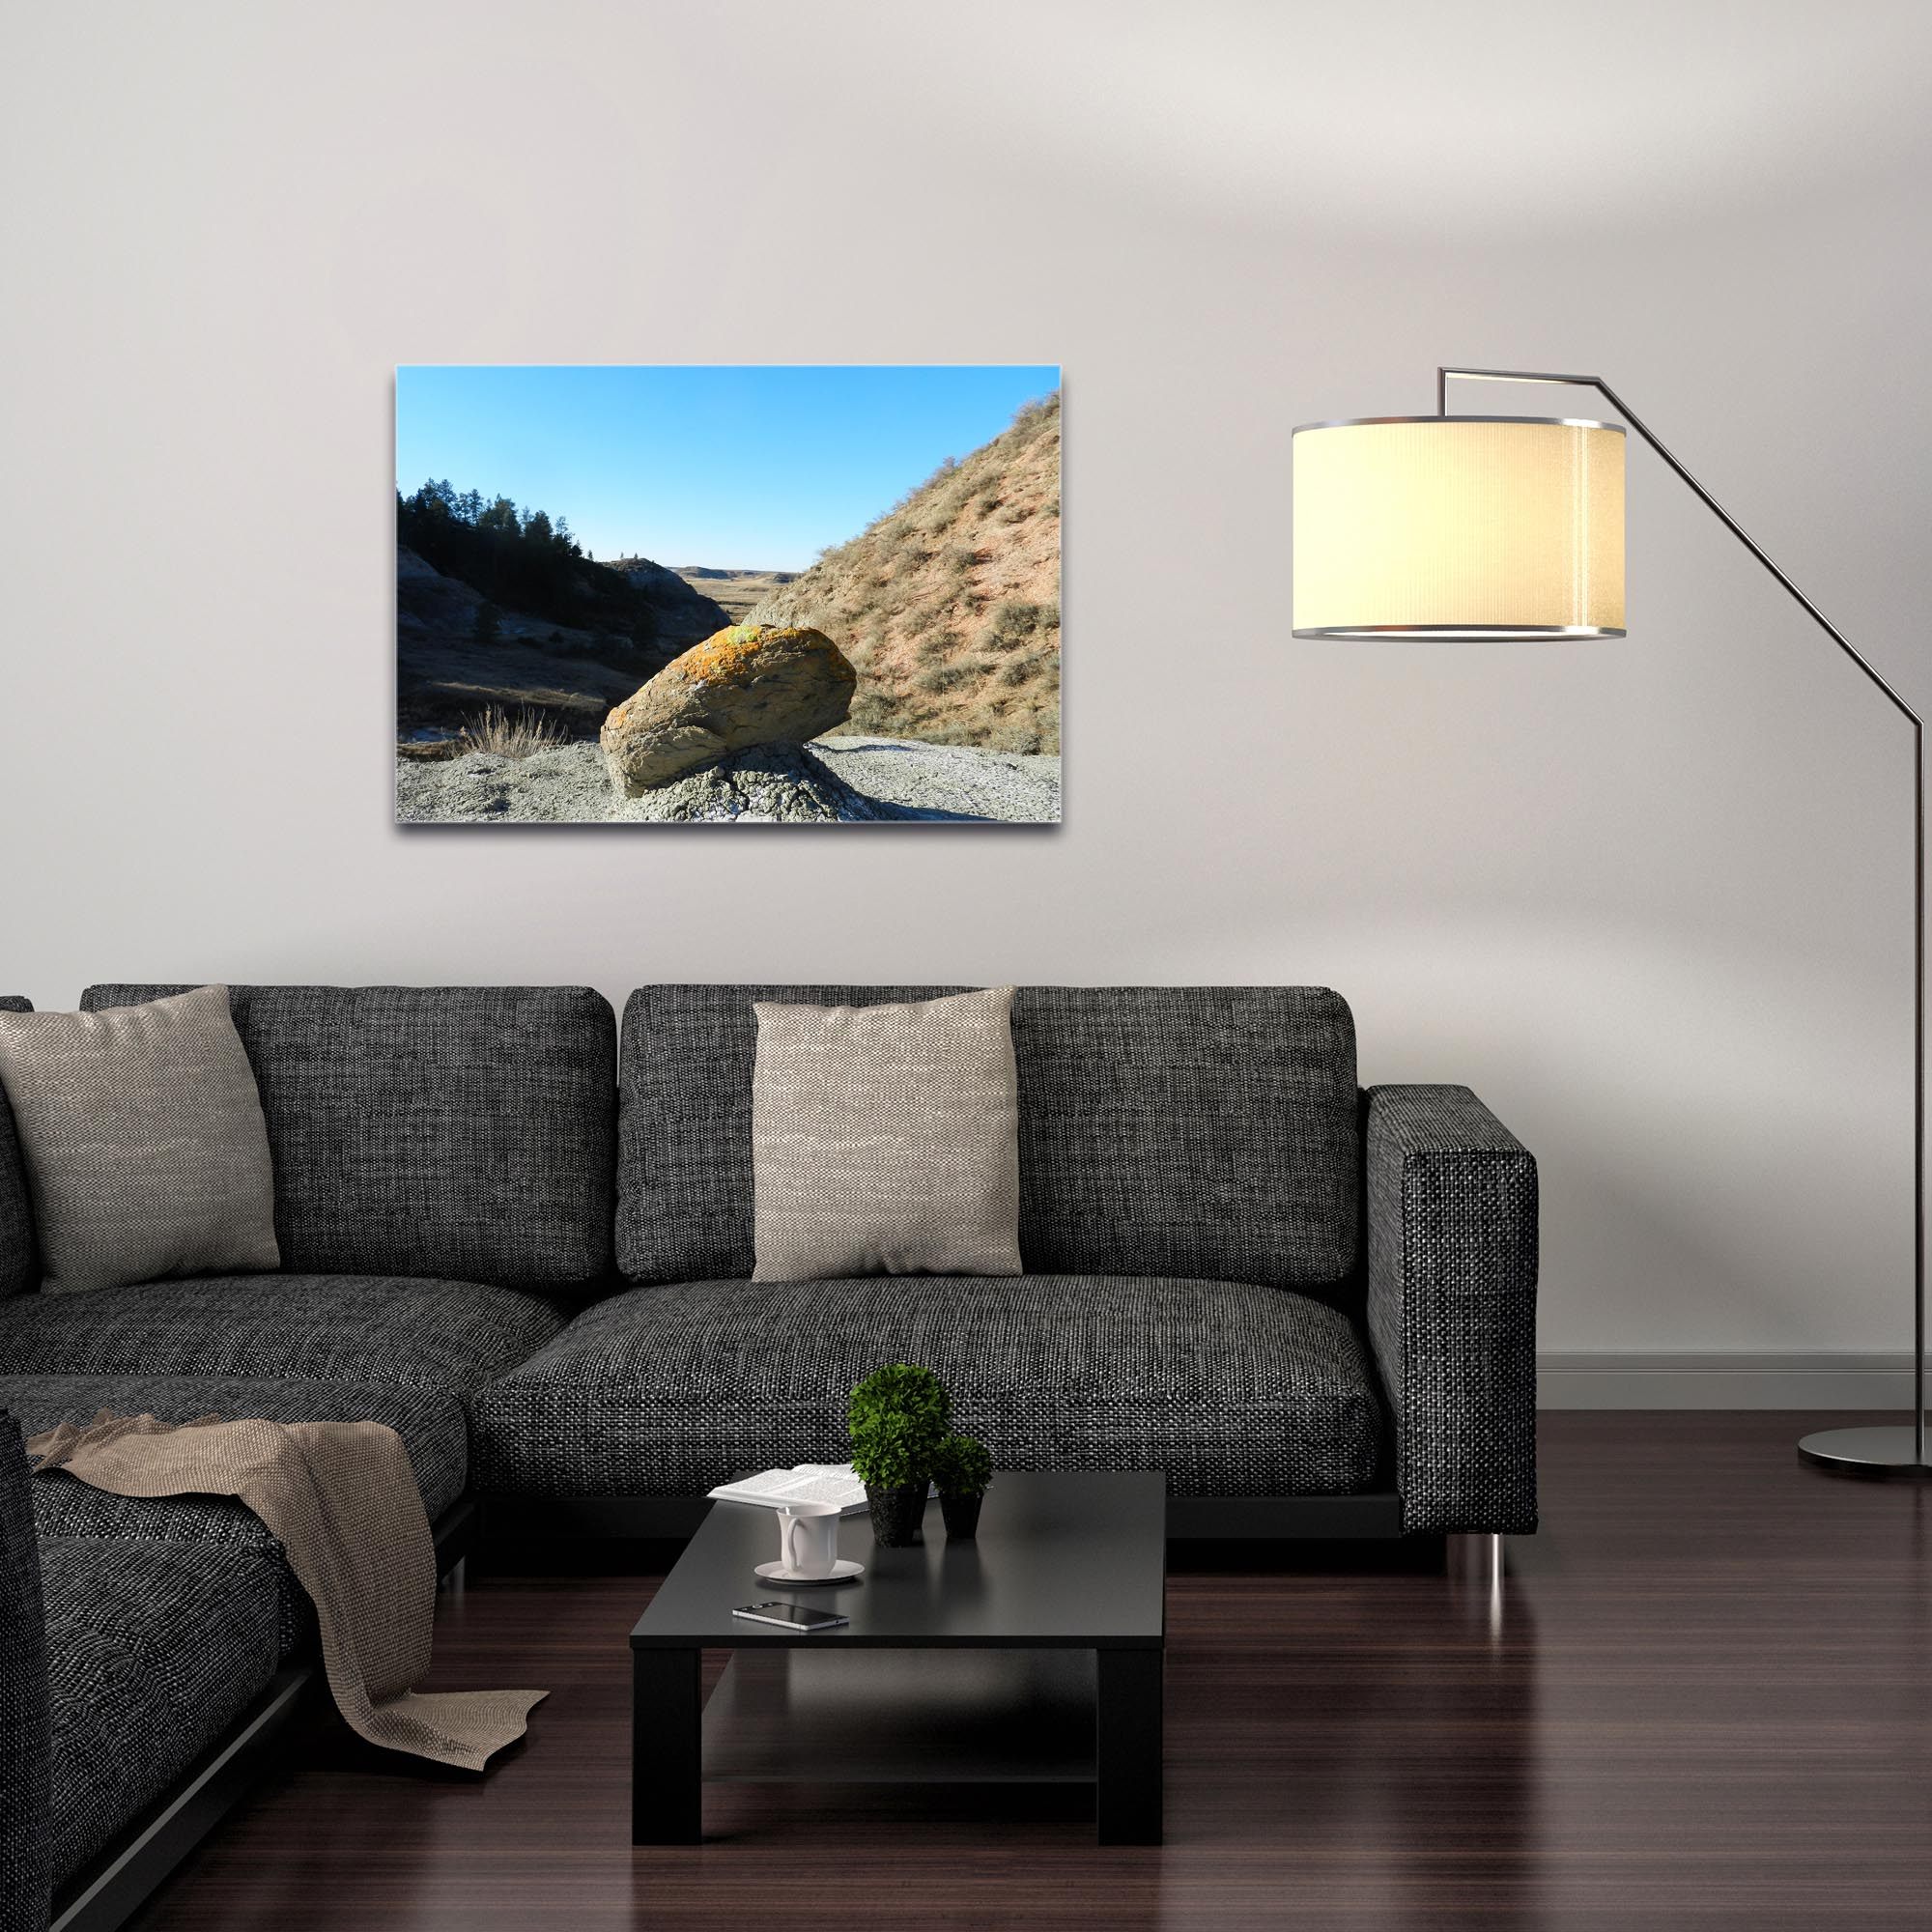 Western Wall Art 'The Rock' - American West Decor on Metal or Plexiglass - Image 3